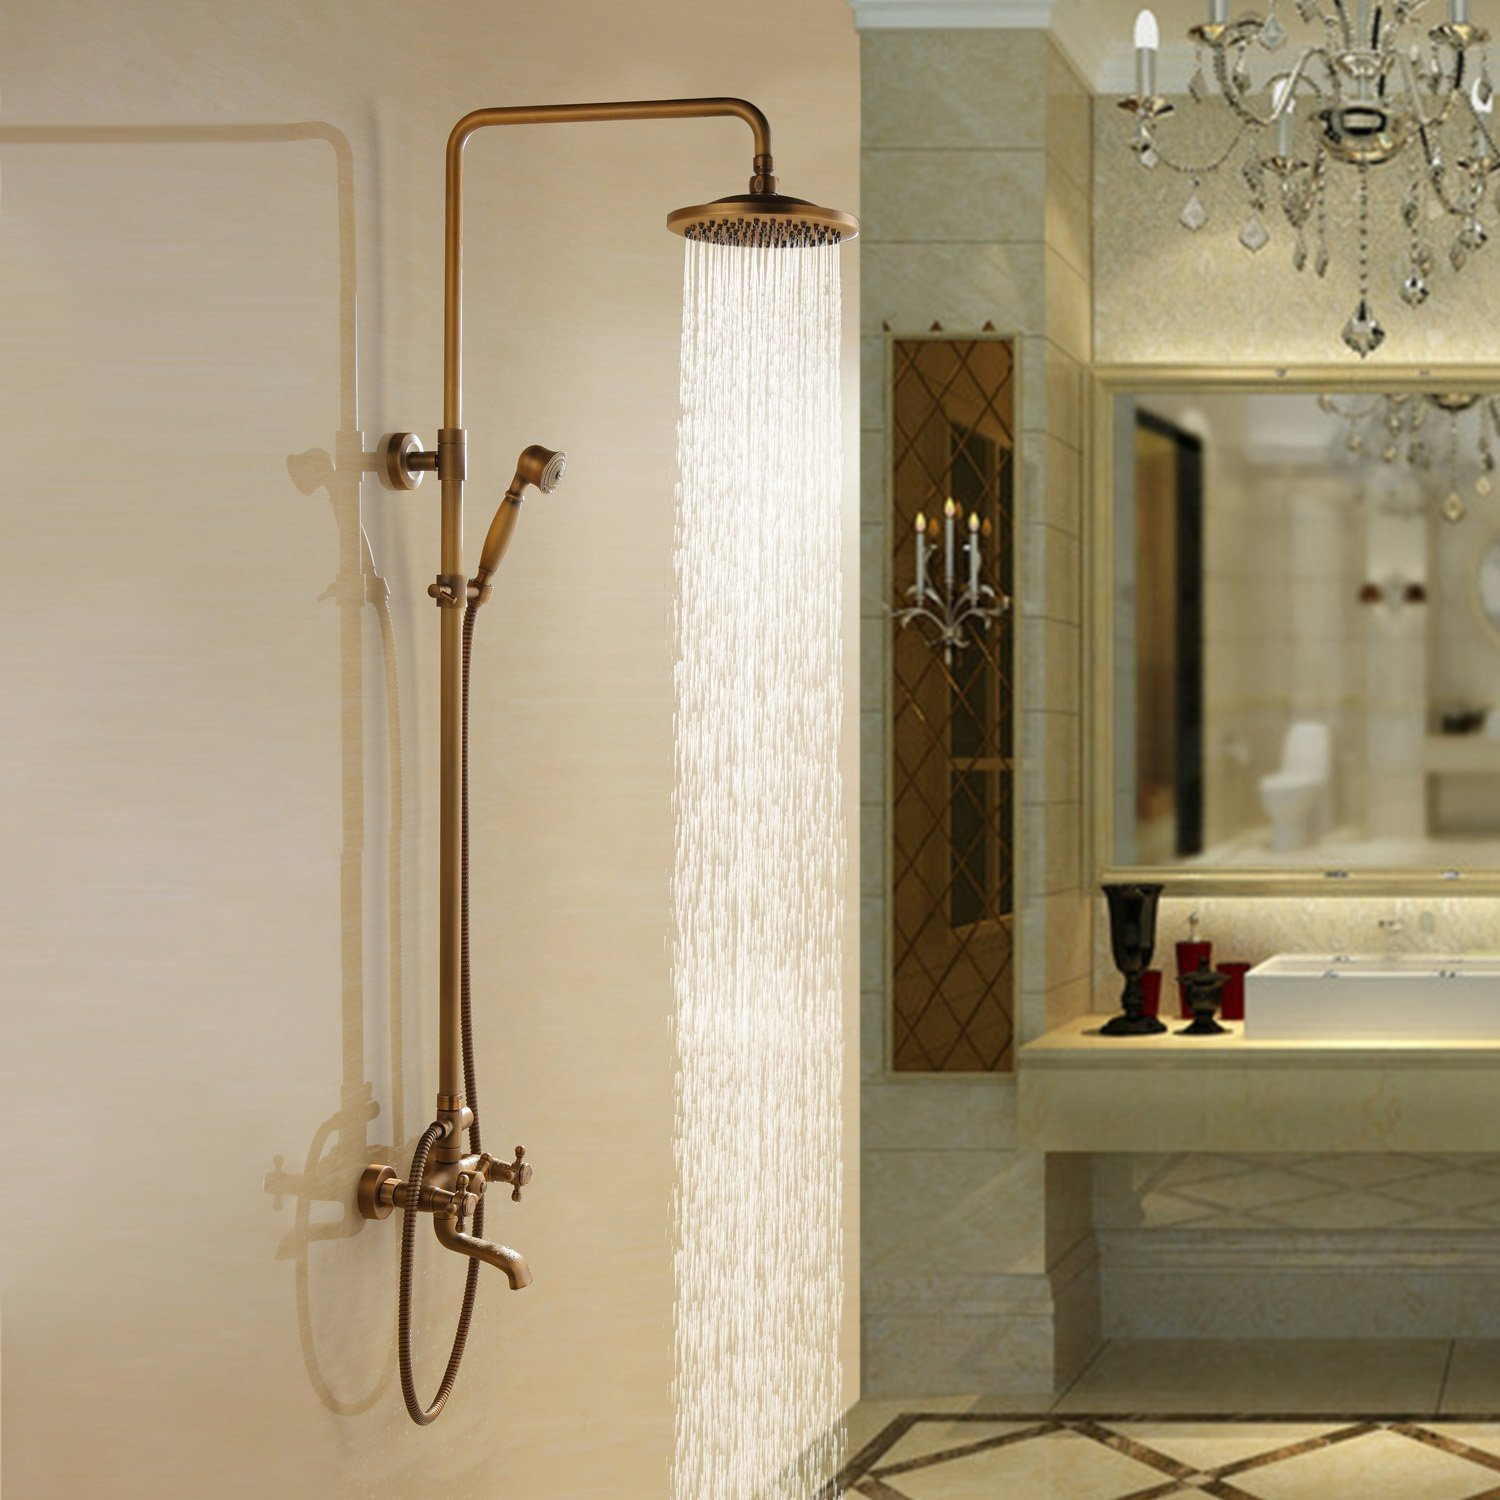 Aur 195 169 Lie Antique Brass Wall Mounted Shower Set